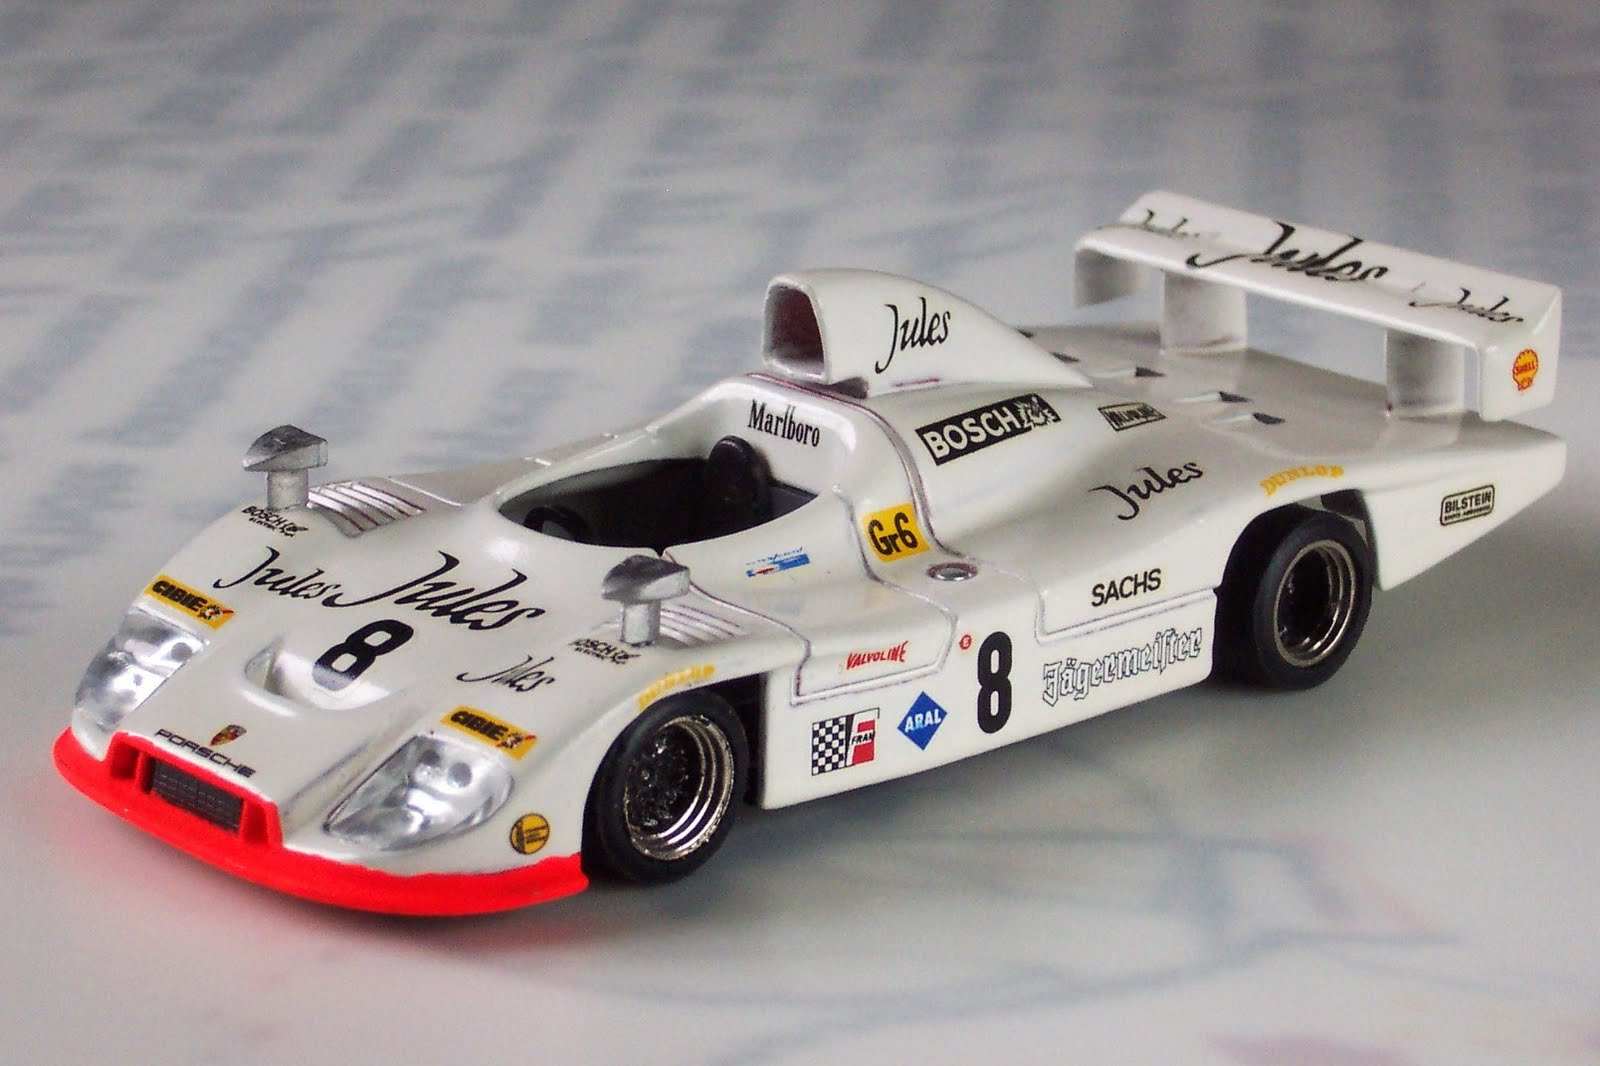 the XJR-11 powered by Rover's V64V 3.5litre V6 originally designed for